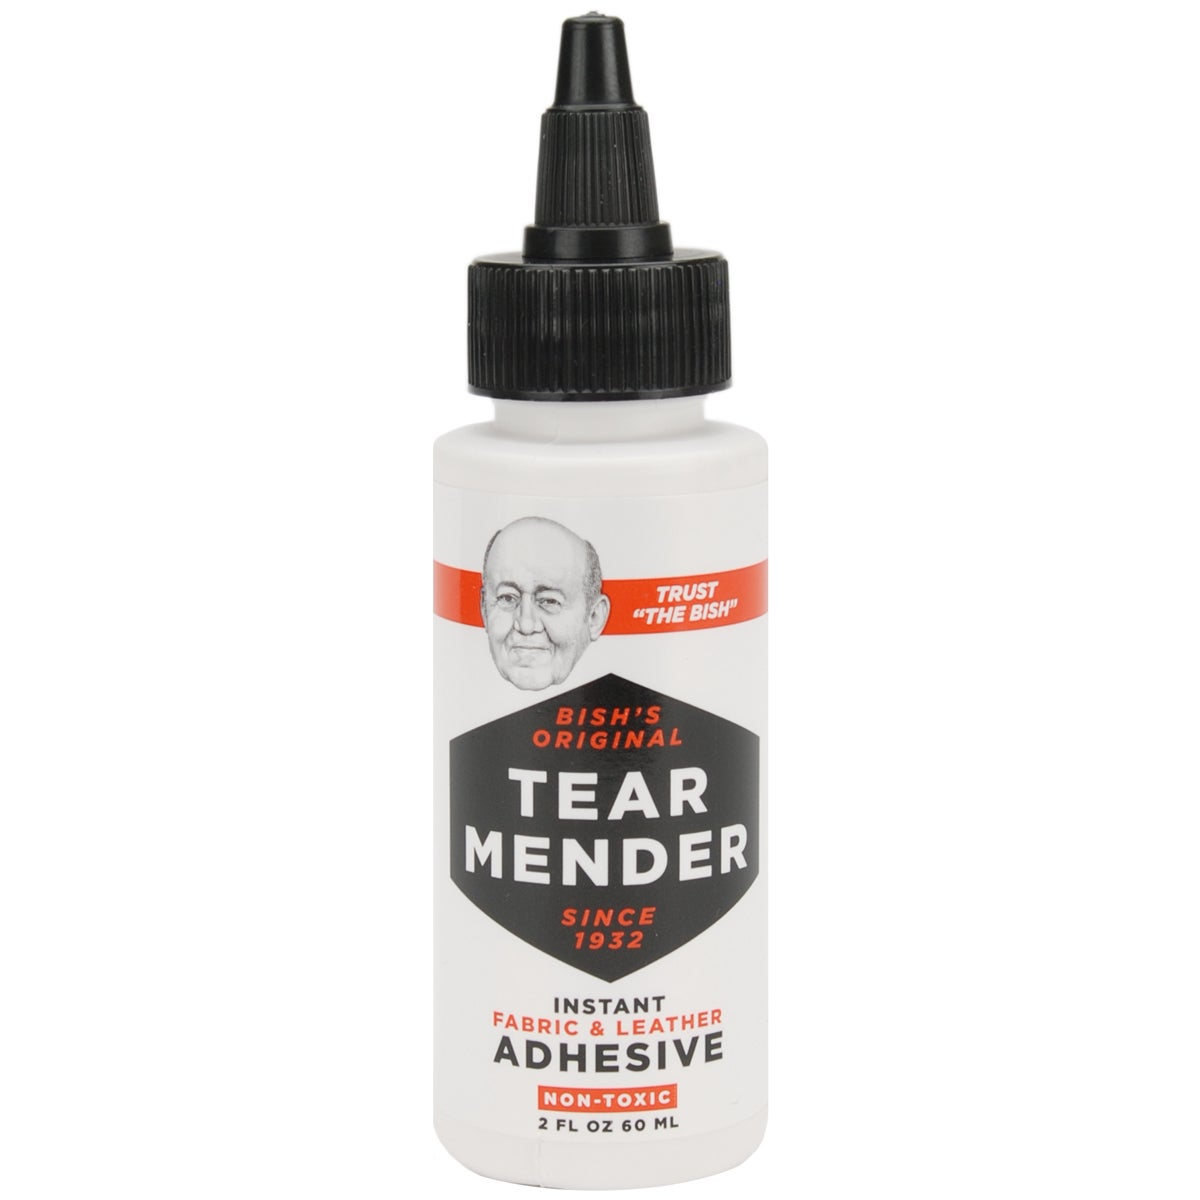 Tear Mender Instant Fabric & Leather Adhesive-2 Ounces